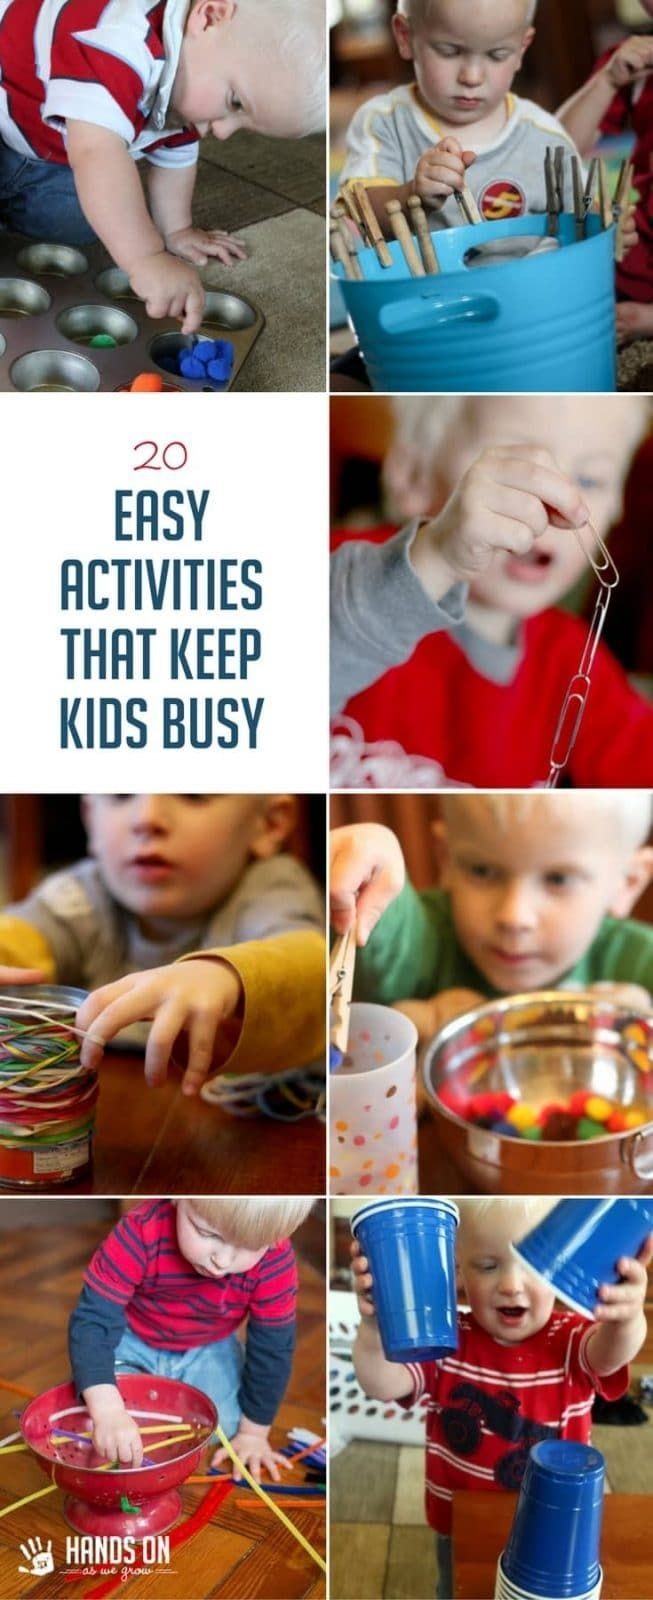 These Activities Worked for Me to Find 20 long awaited Minutes of ...